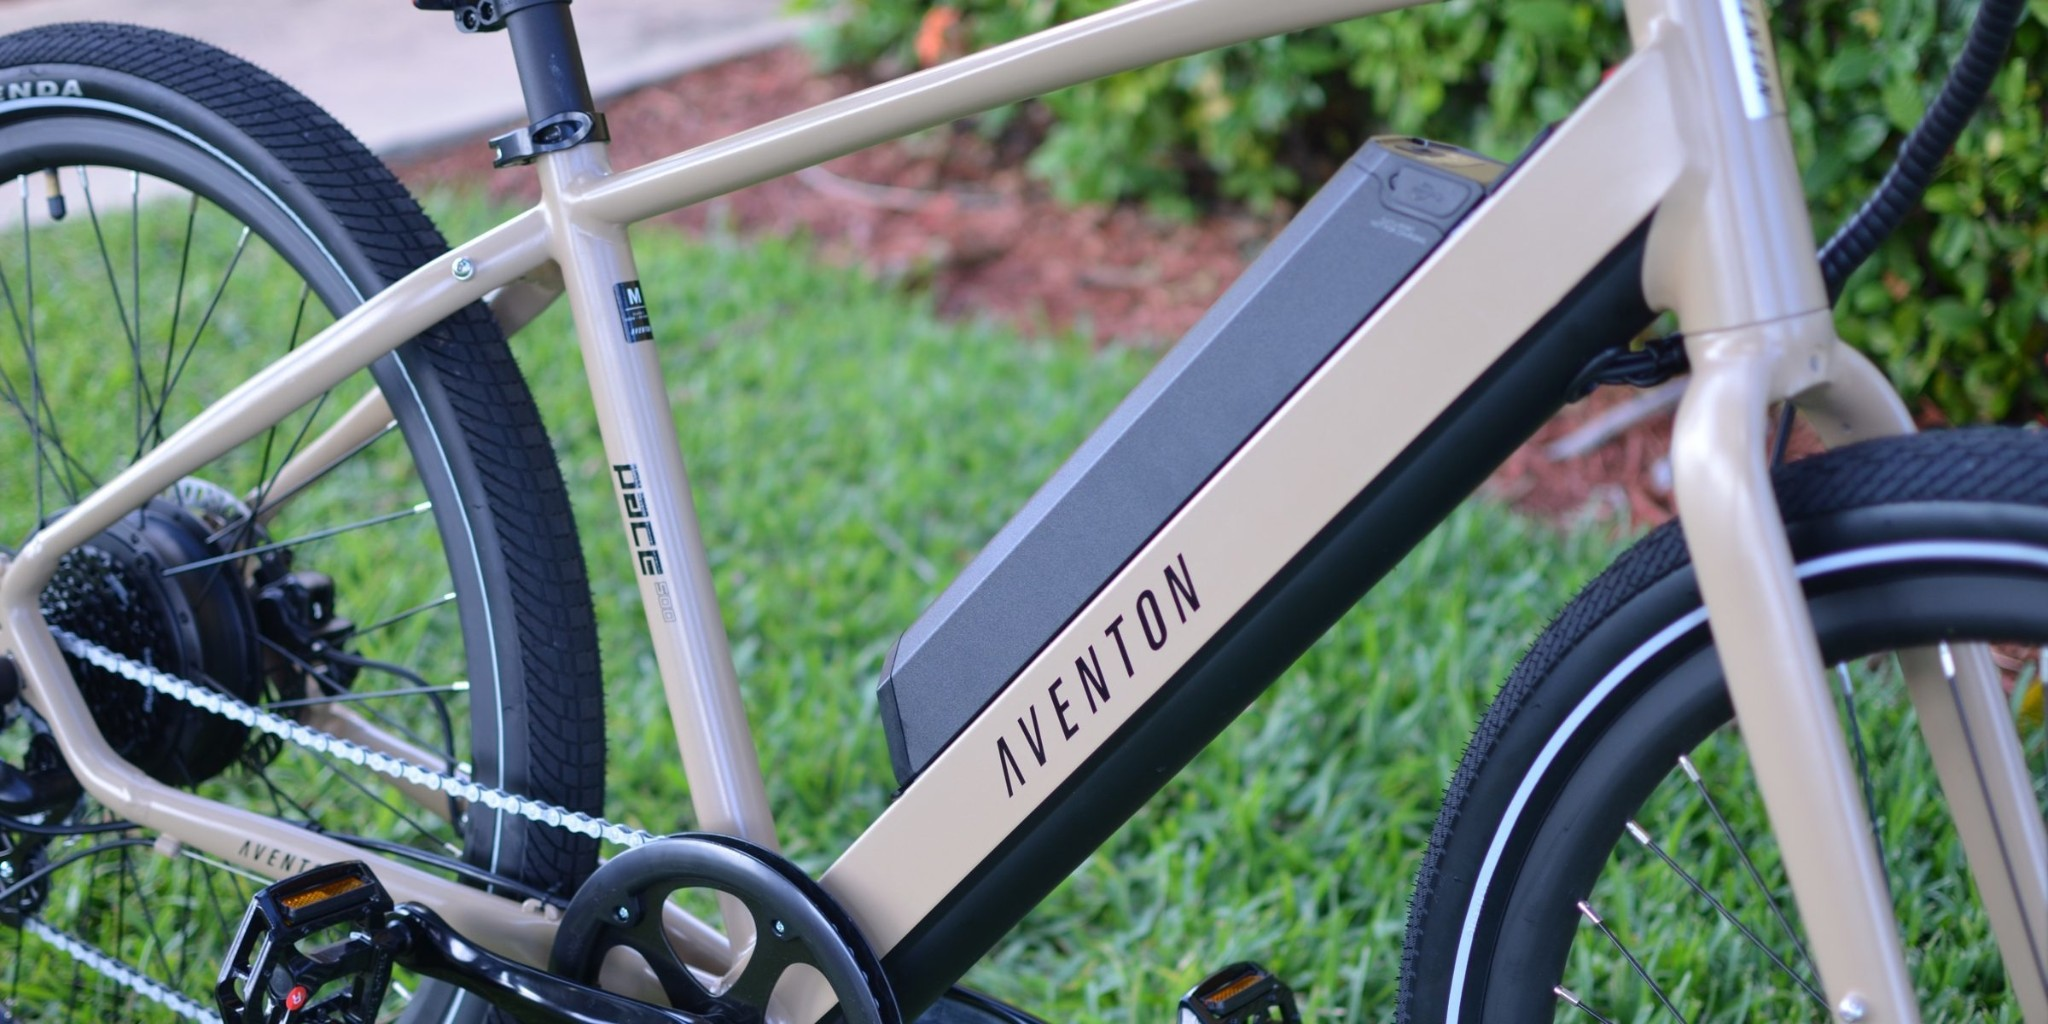 Aventon Pace 500 review: A 28 MPH e-bike for $1,399 that is a commuting dream - Electrek